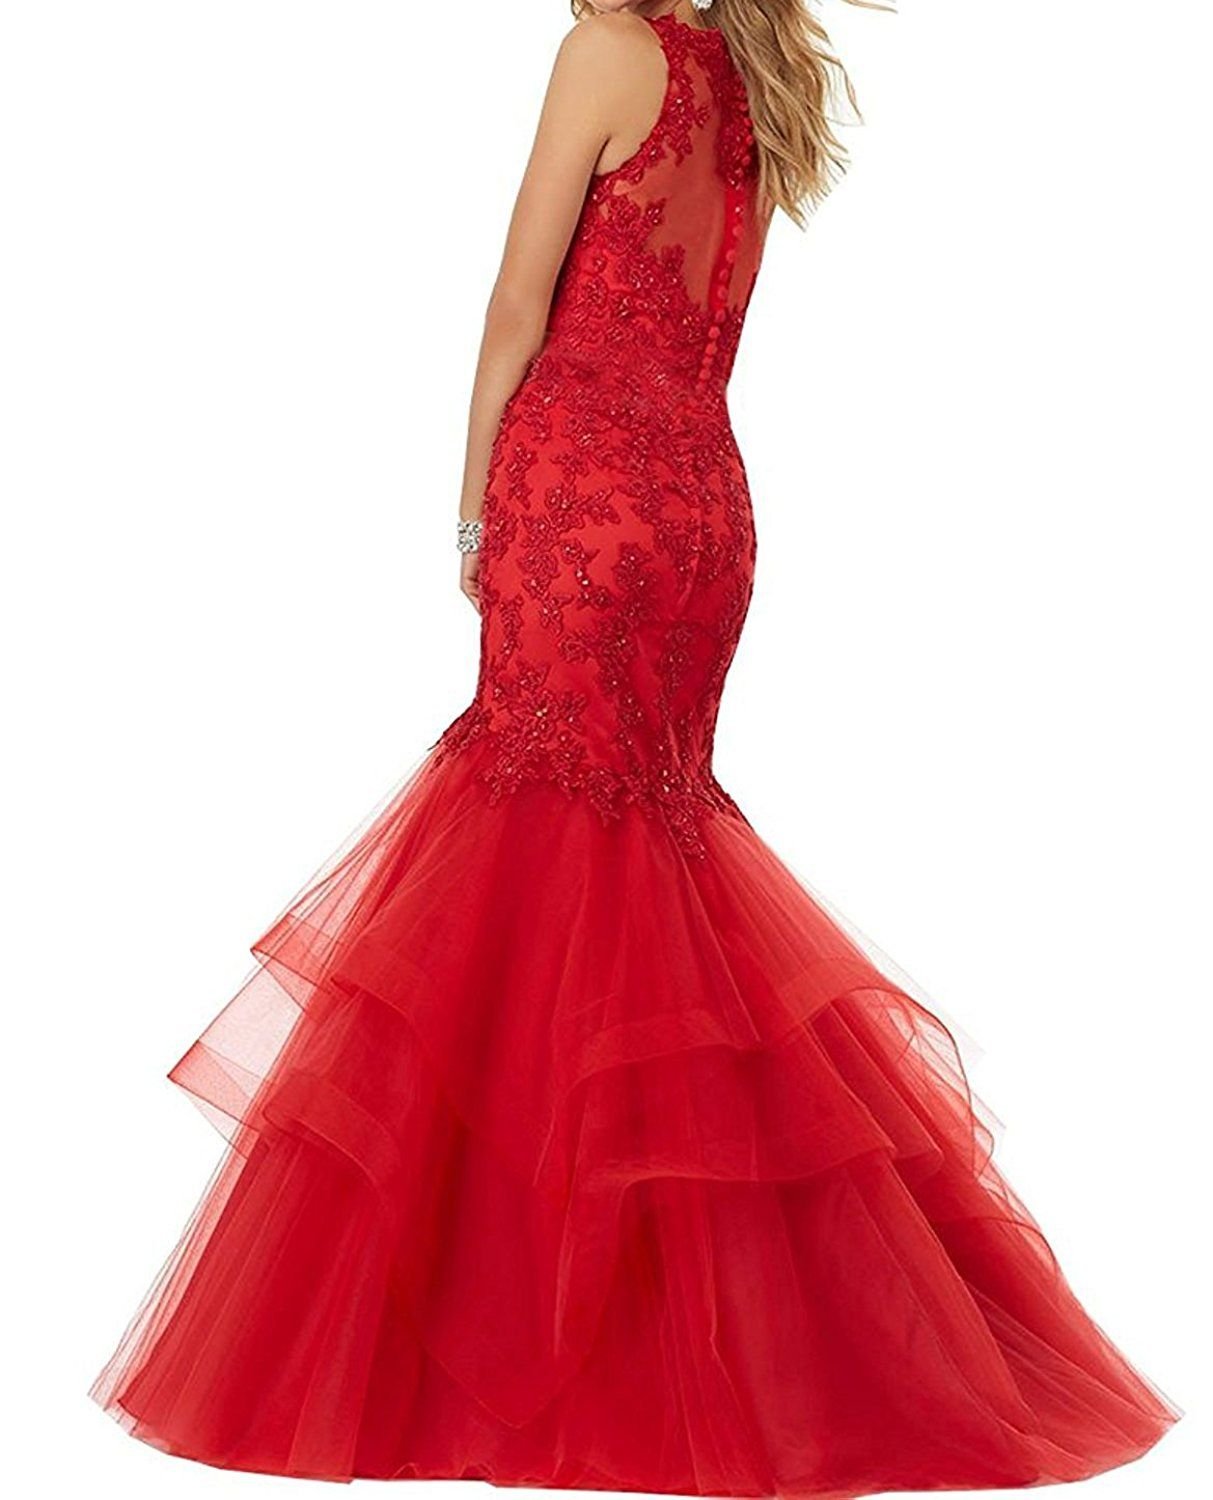 Bonnieshop bonnie beaded lace embroidered prom dresses long mermaid